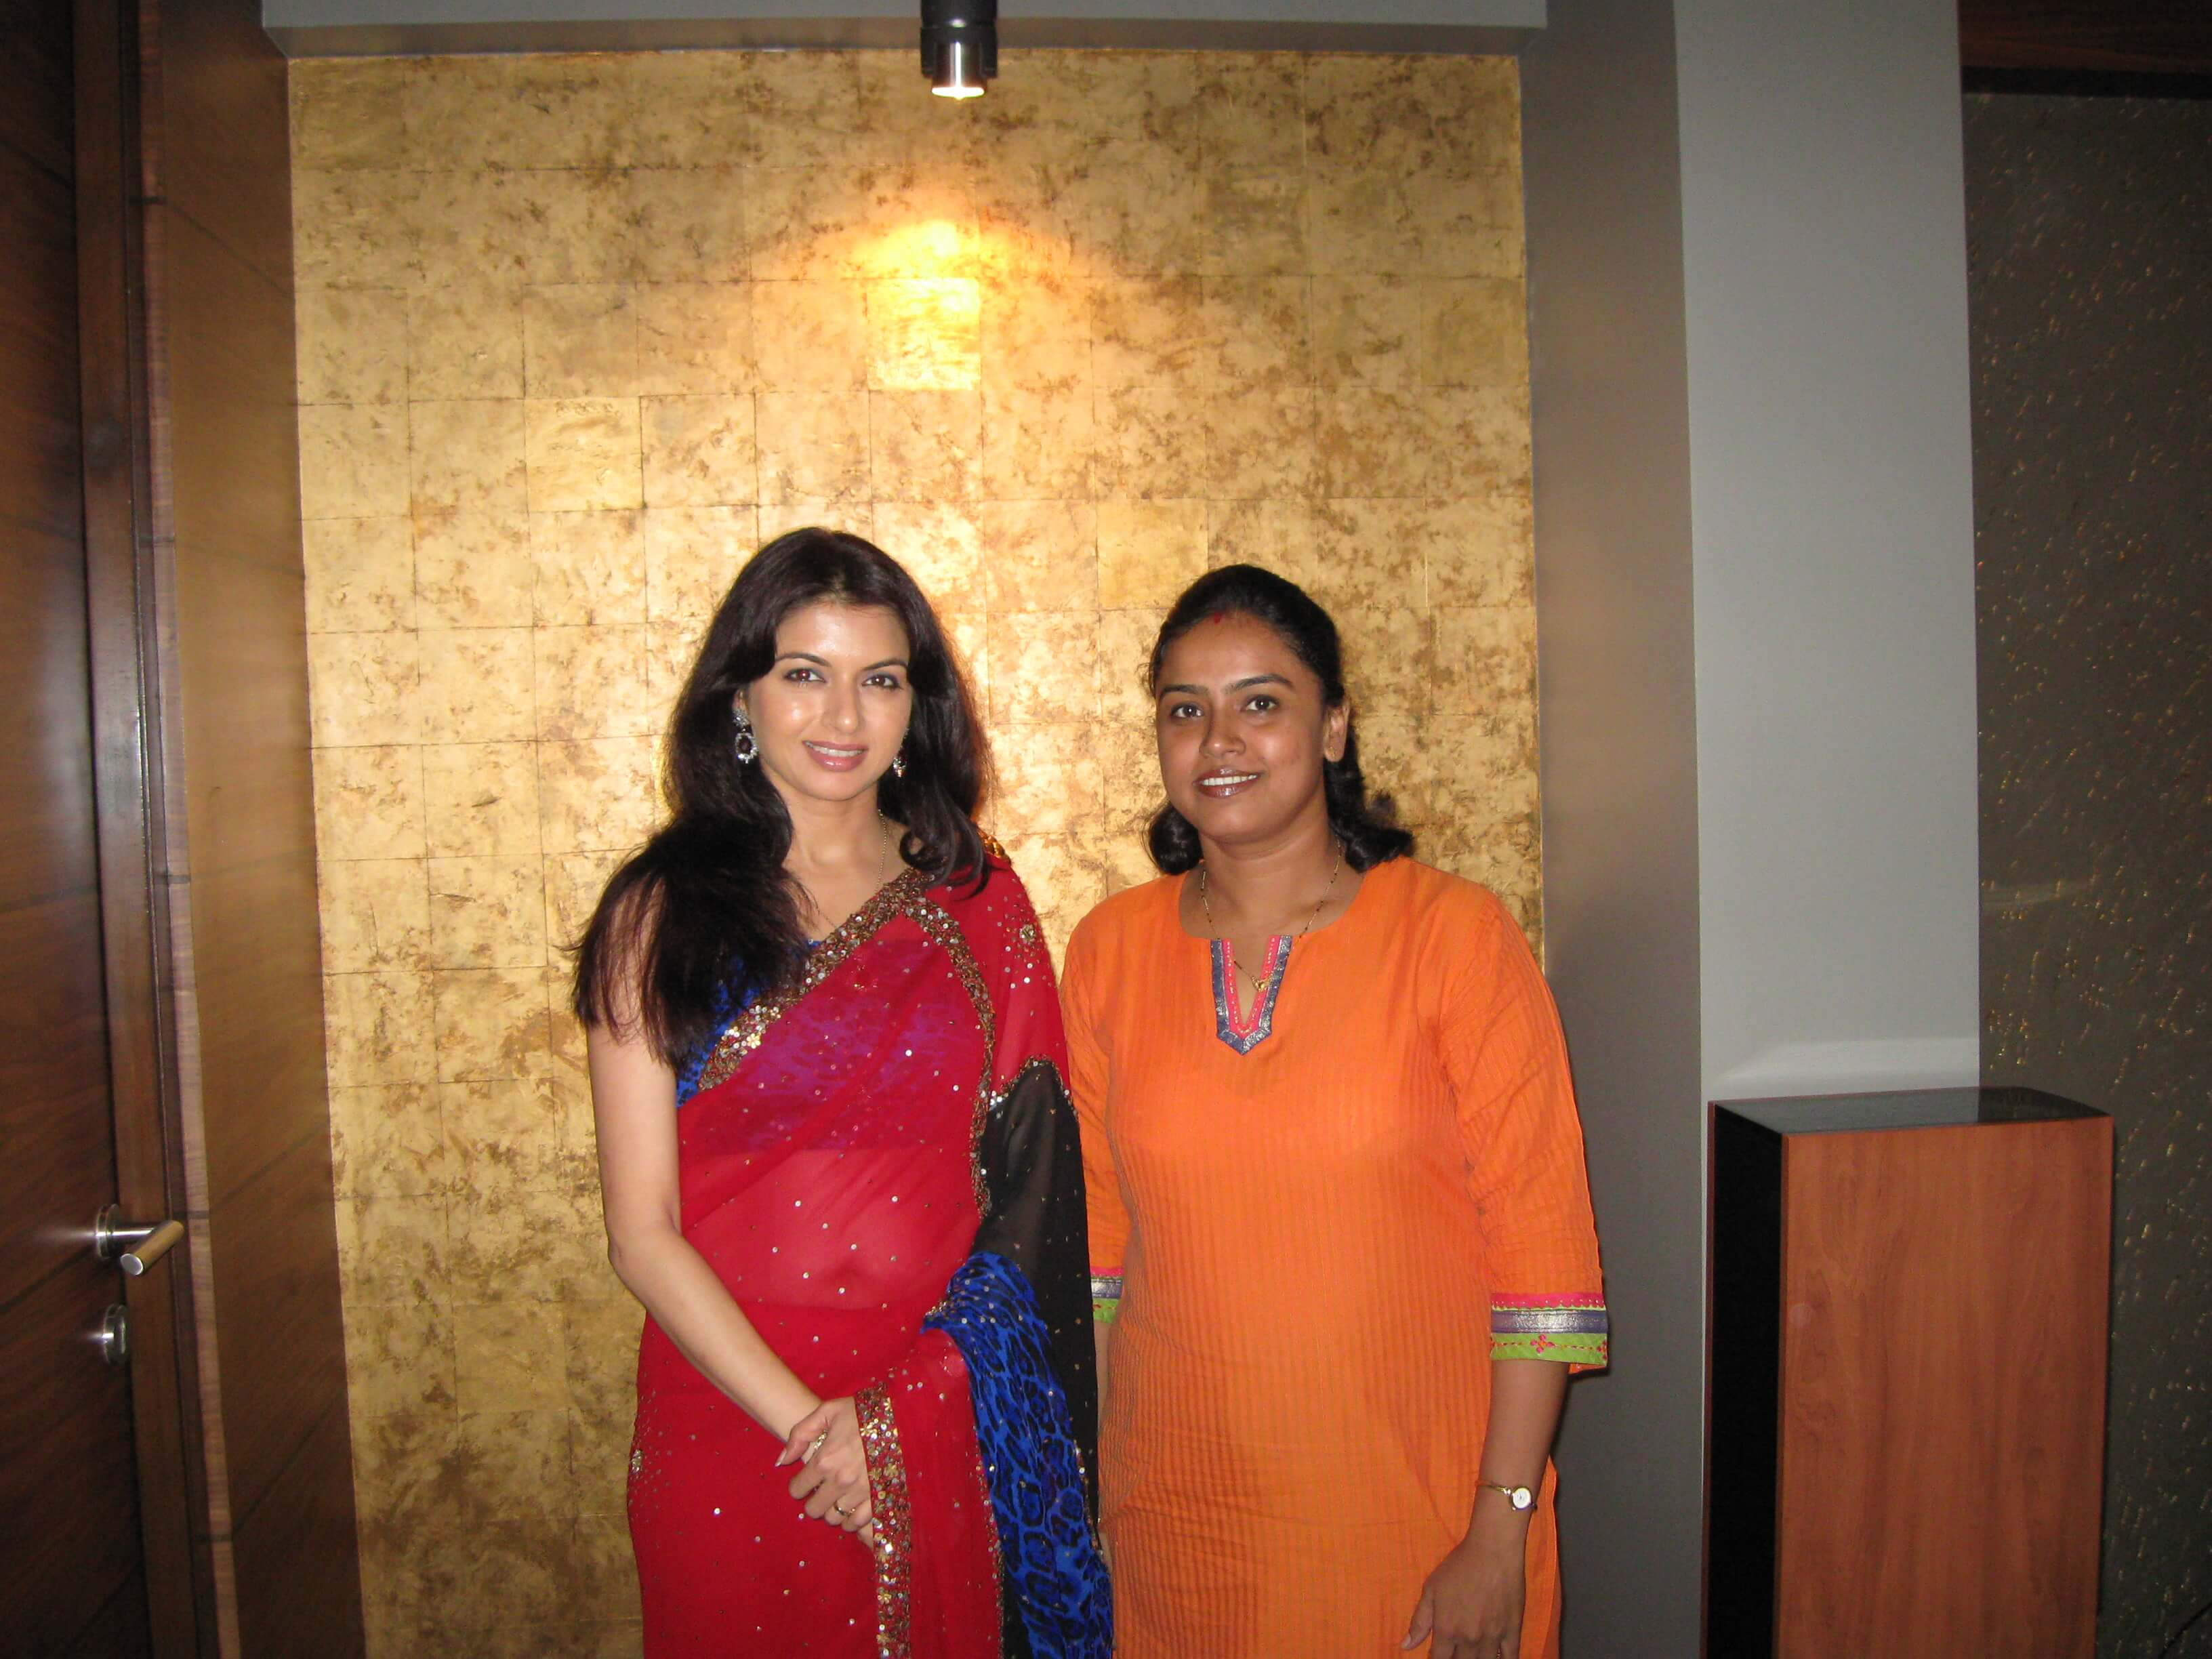 Our faculty Shilpa Ijeri with Bollywood Actress Bhagyashree Patwardhan, one of our students